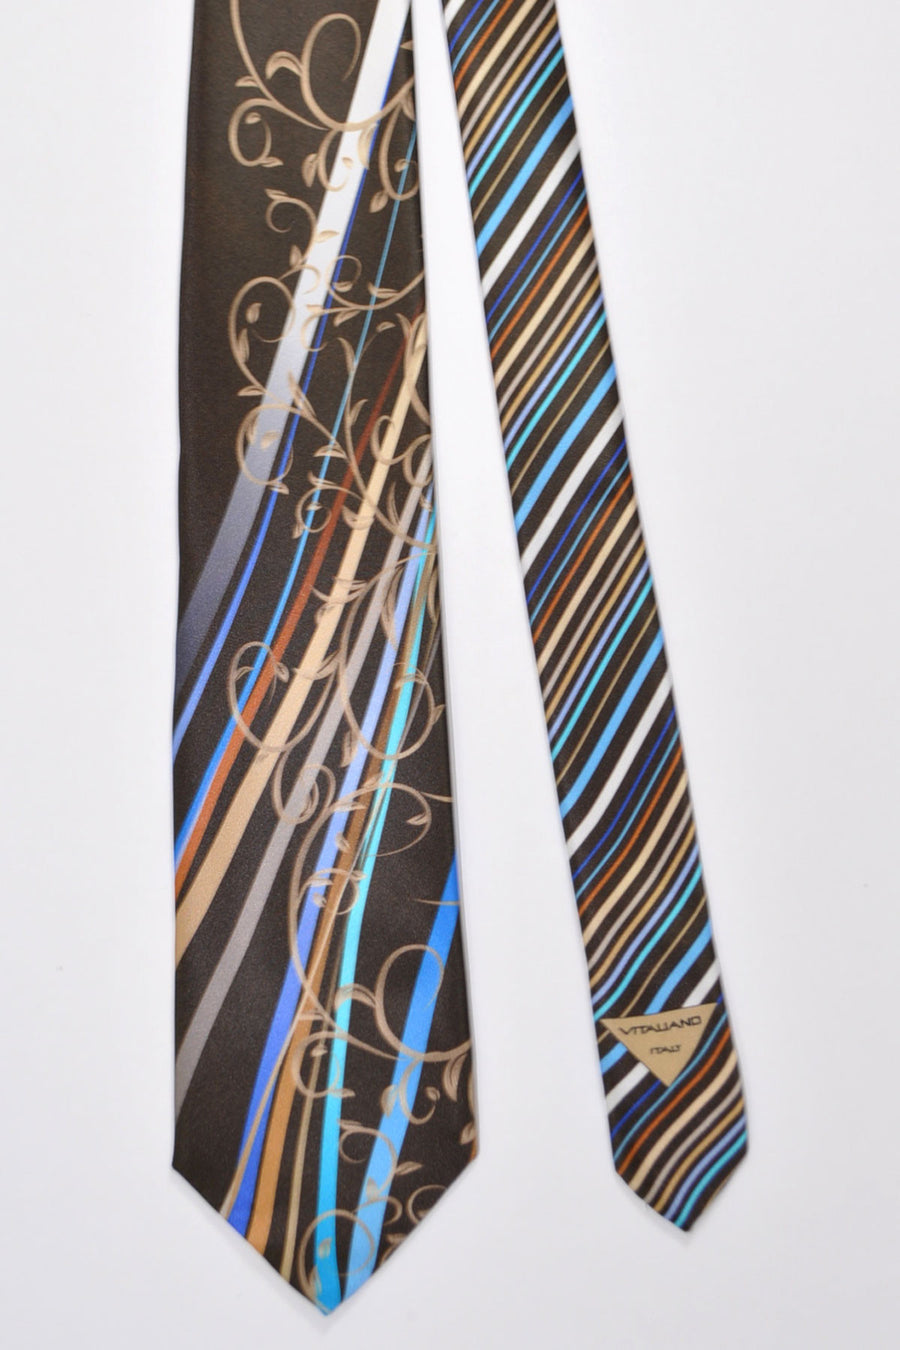 Vitaliano Pancaldi Tie Brown Aqua Gray Stripes